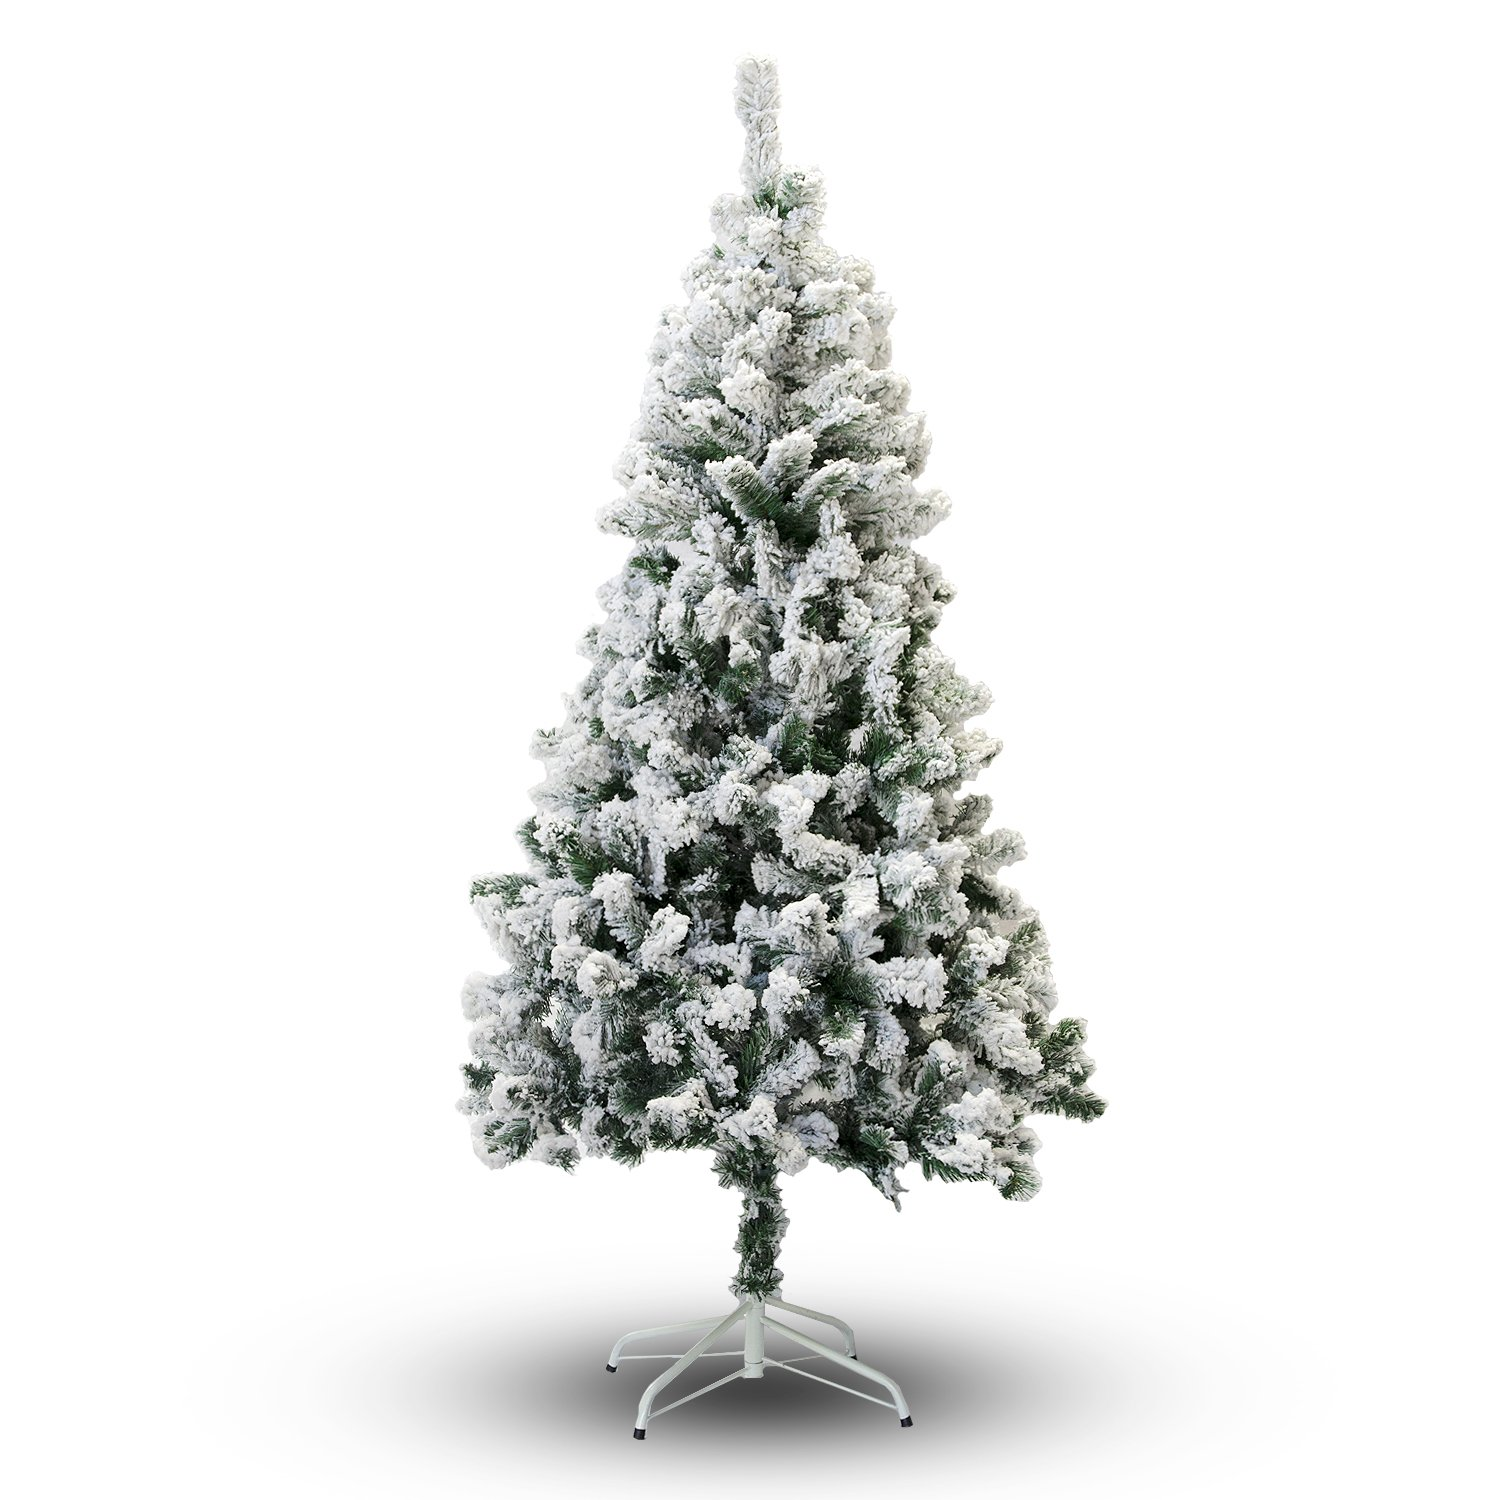 amazoncom perfect holiday christmas tree 6 feet flocked snow home kitchen - Fake Snow For Christmas Trees